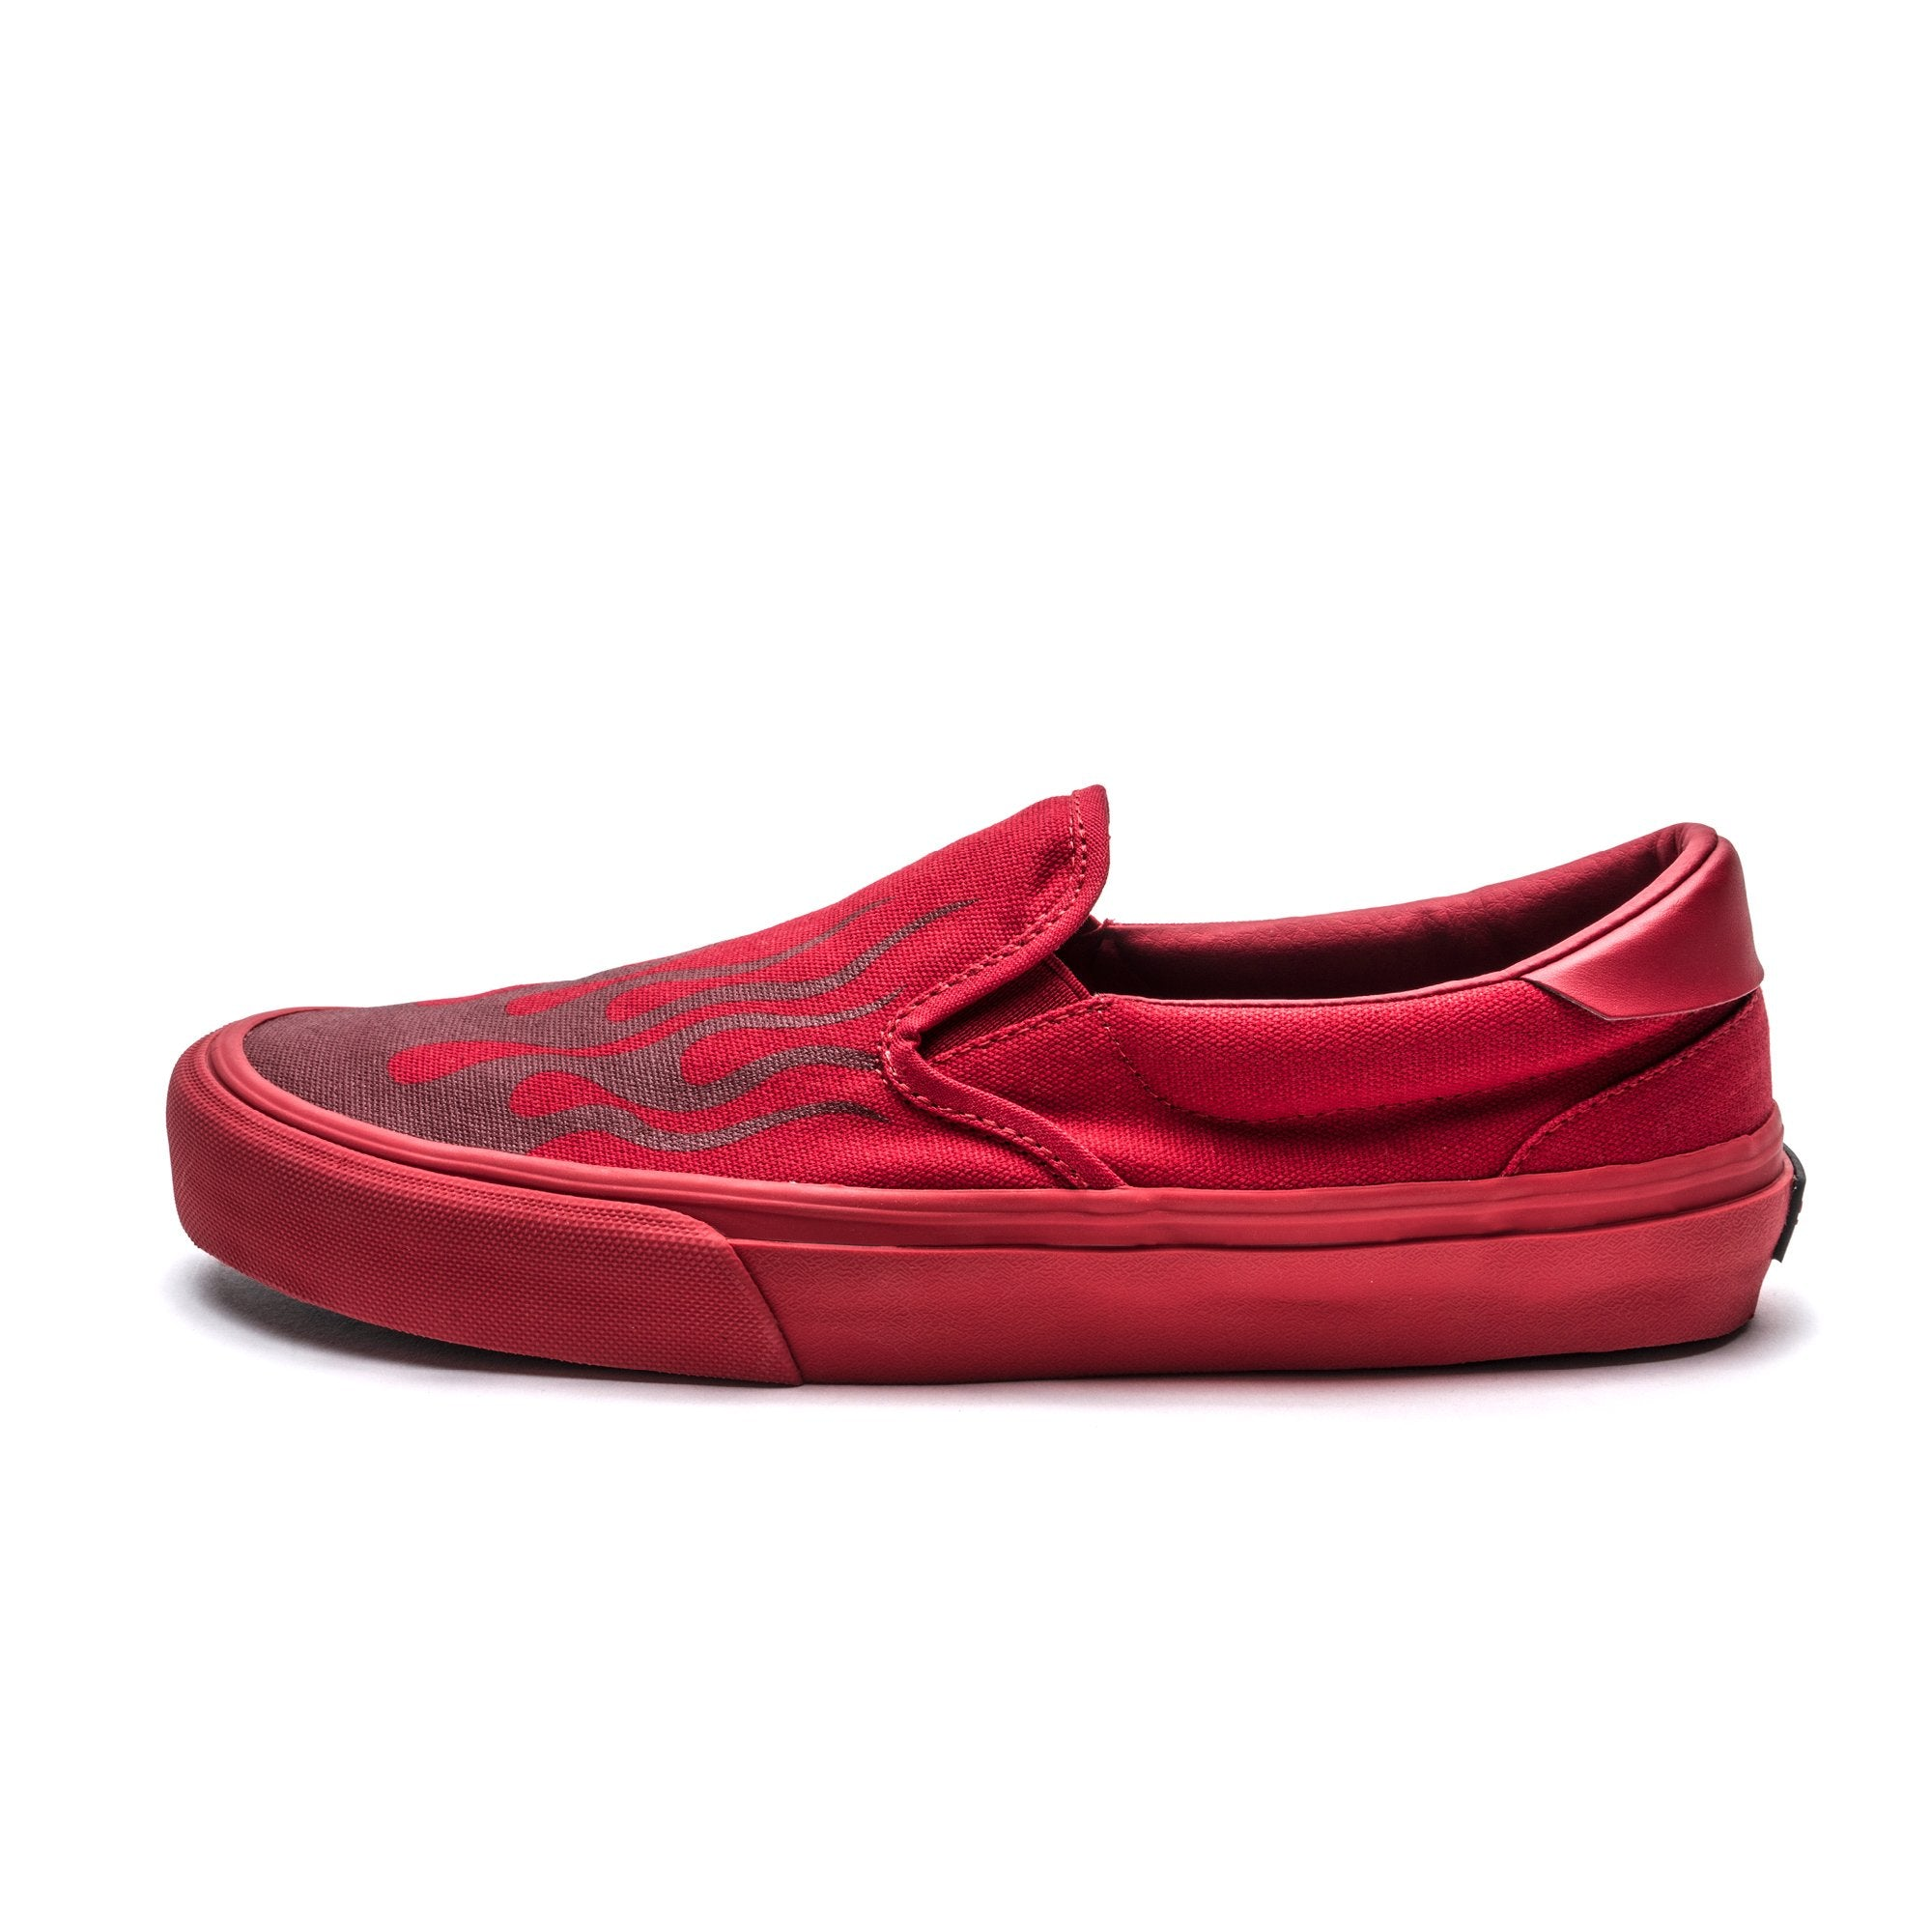 VENTURA | RED FLAMES1 / Lateral View